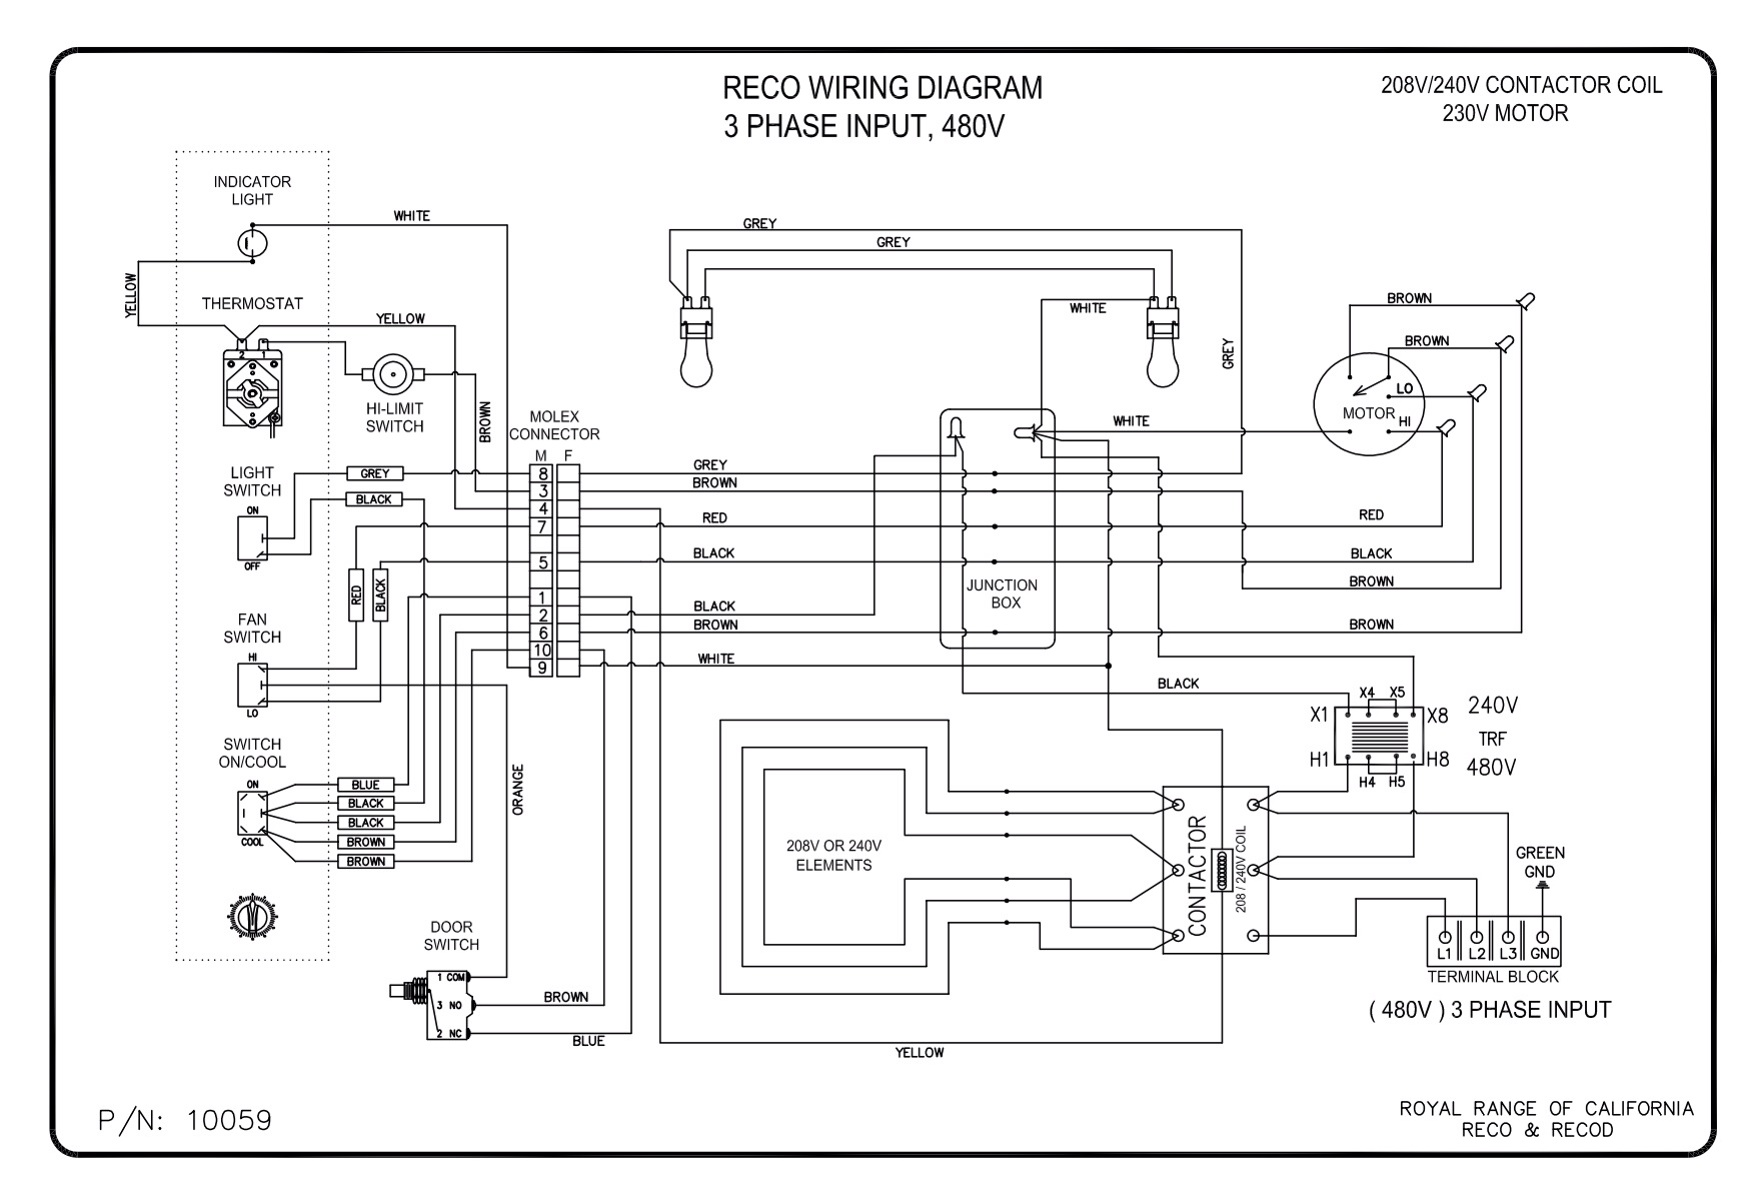 Wiring Diagrams Royal Range Of California Electrical Drawing Circuit Reco 480v 3 Phase